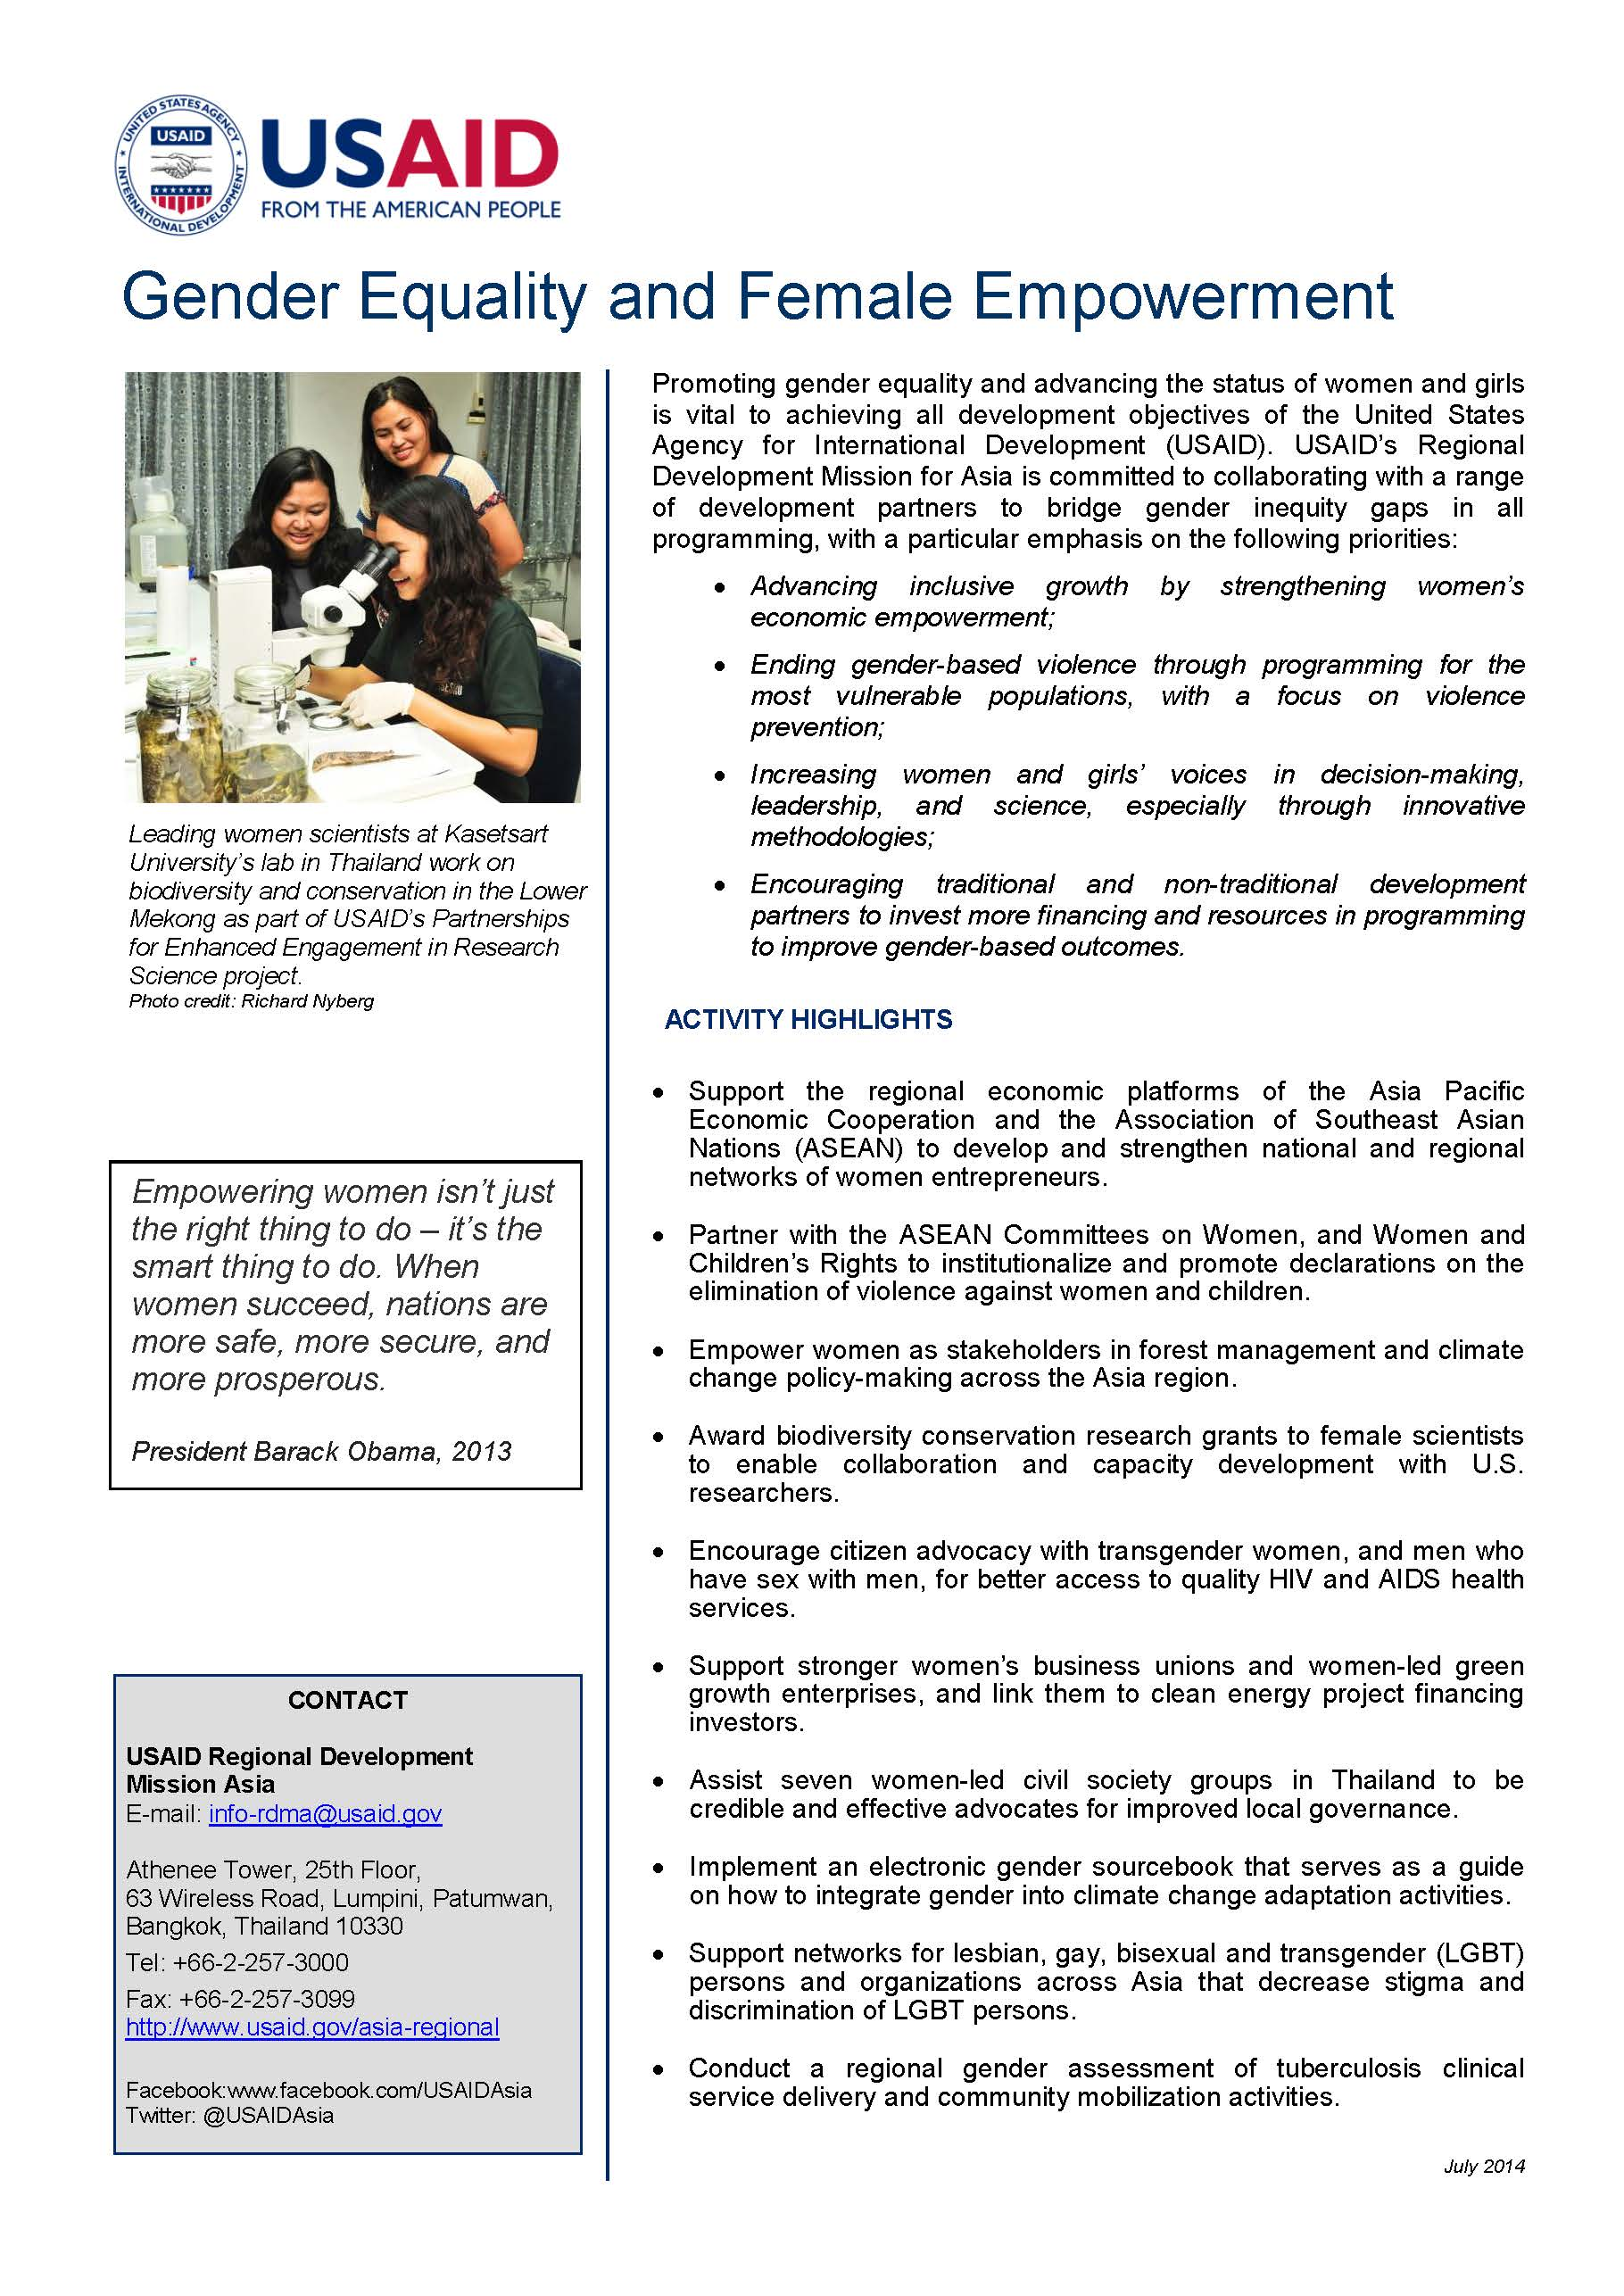 Fact Sheet - Gender Equality and Female Empowerment